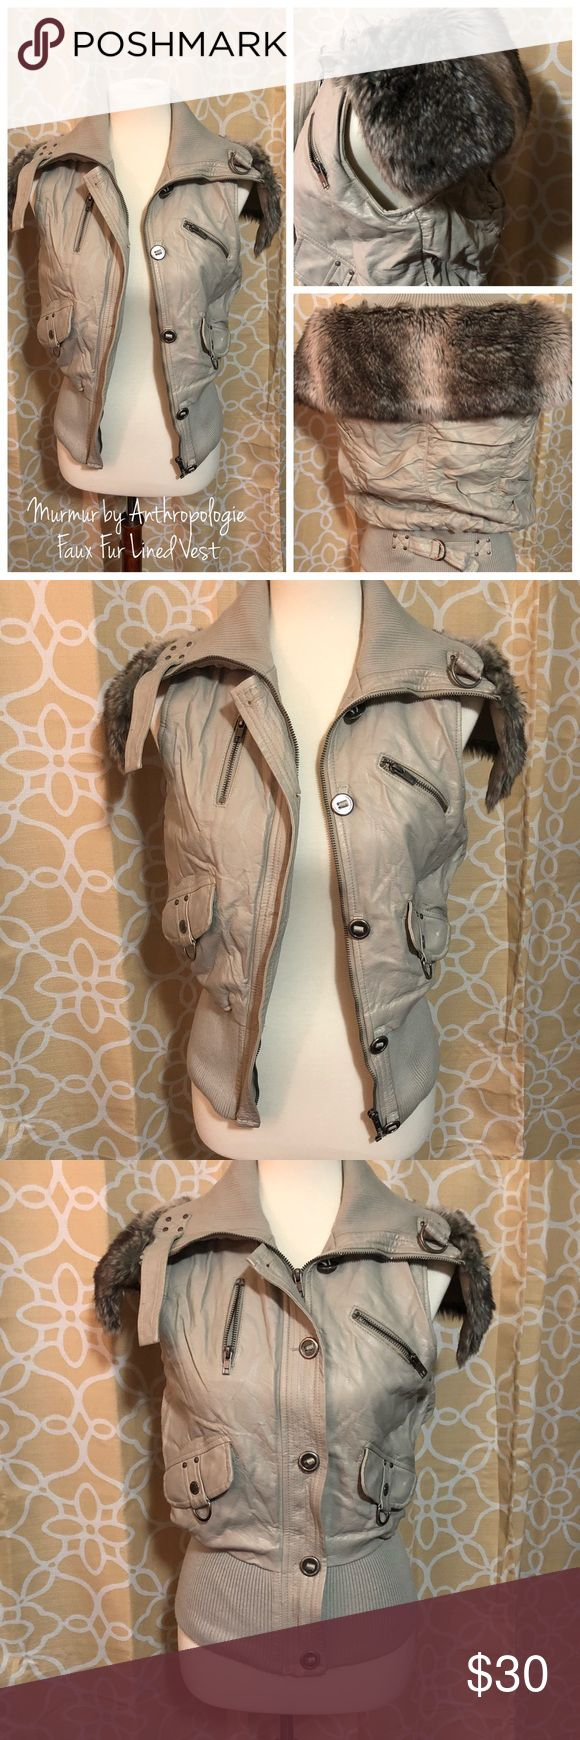 Murmur by Anthropologie Faux Fur Lined Vest Cozy seasonal transition piece to keep you warm until the sunshine comes back (if you live up north like me! Brrrr). Perfect paired with skinny's & a bootie or some joggers and sneaks. EUC. Size M. Anthropologie Jackets & Coats Vests